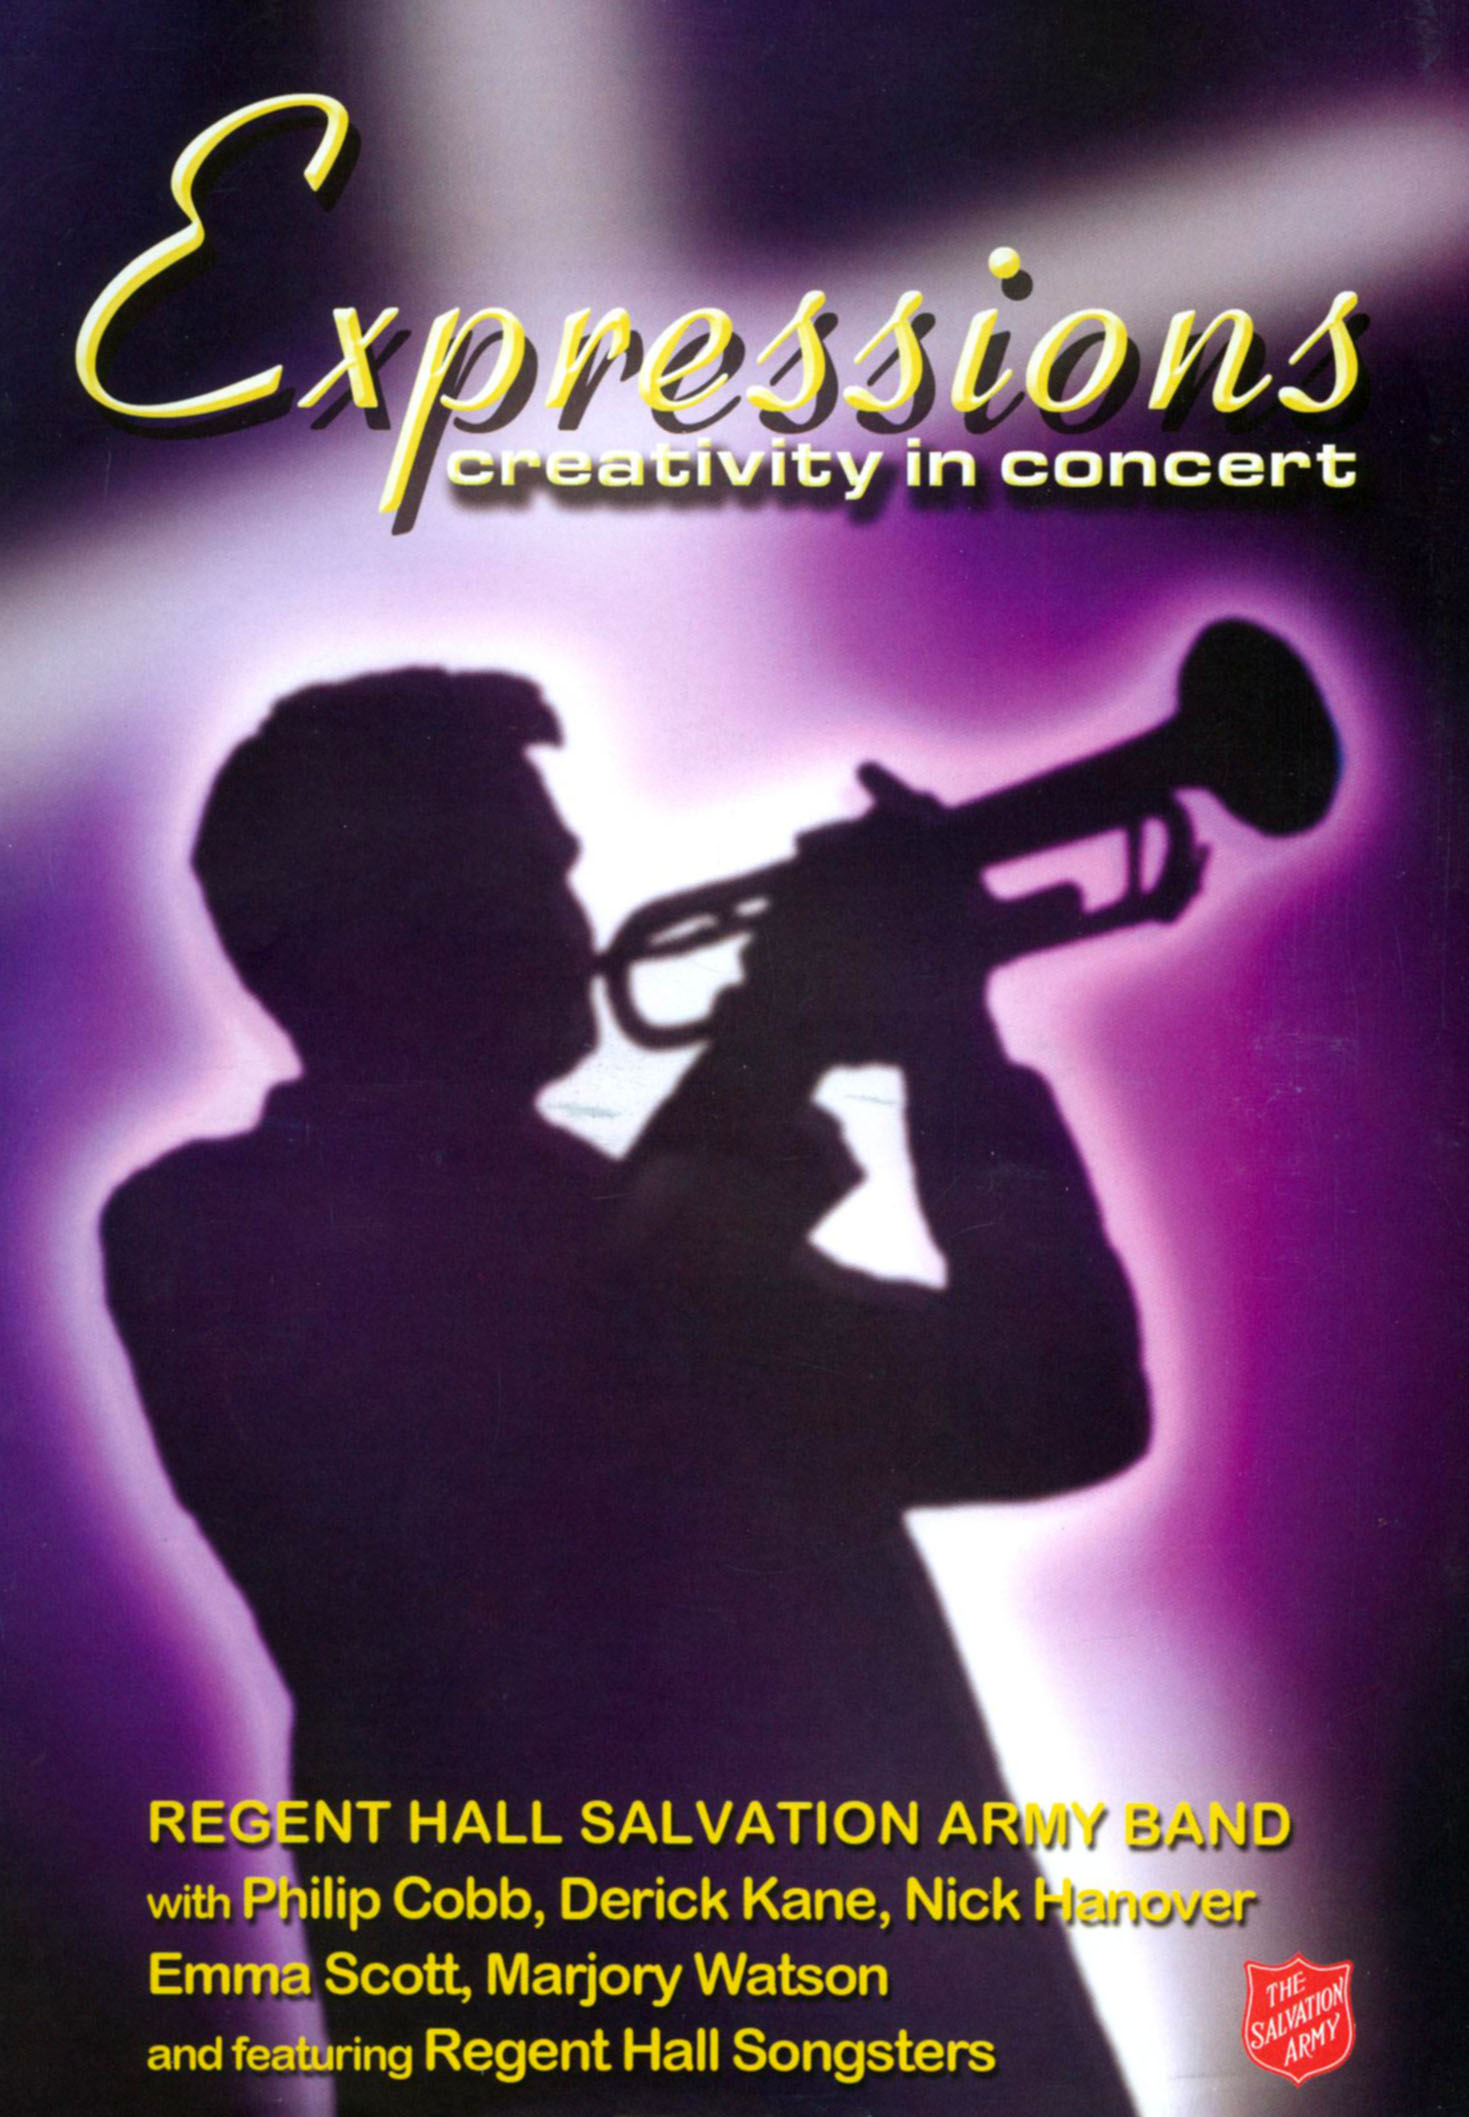 Expressions: Creativity in Concert